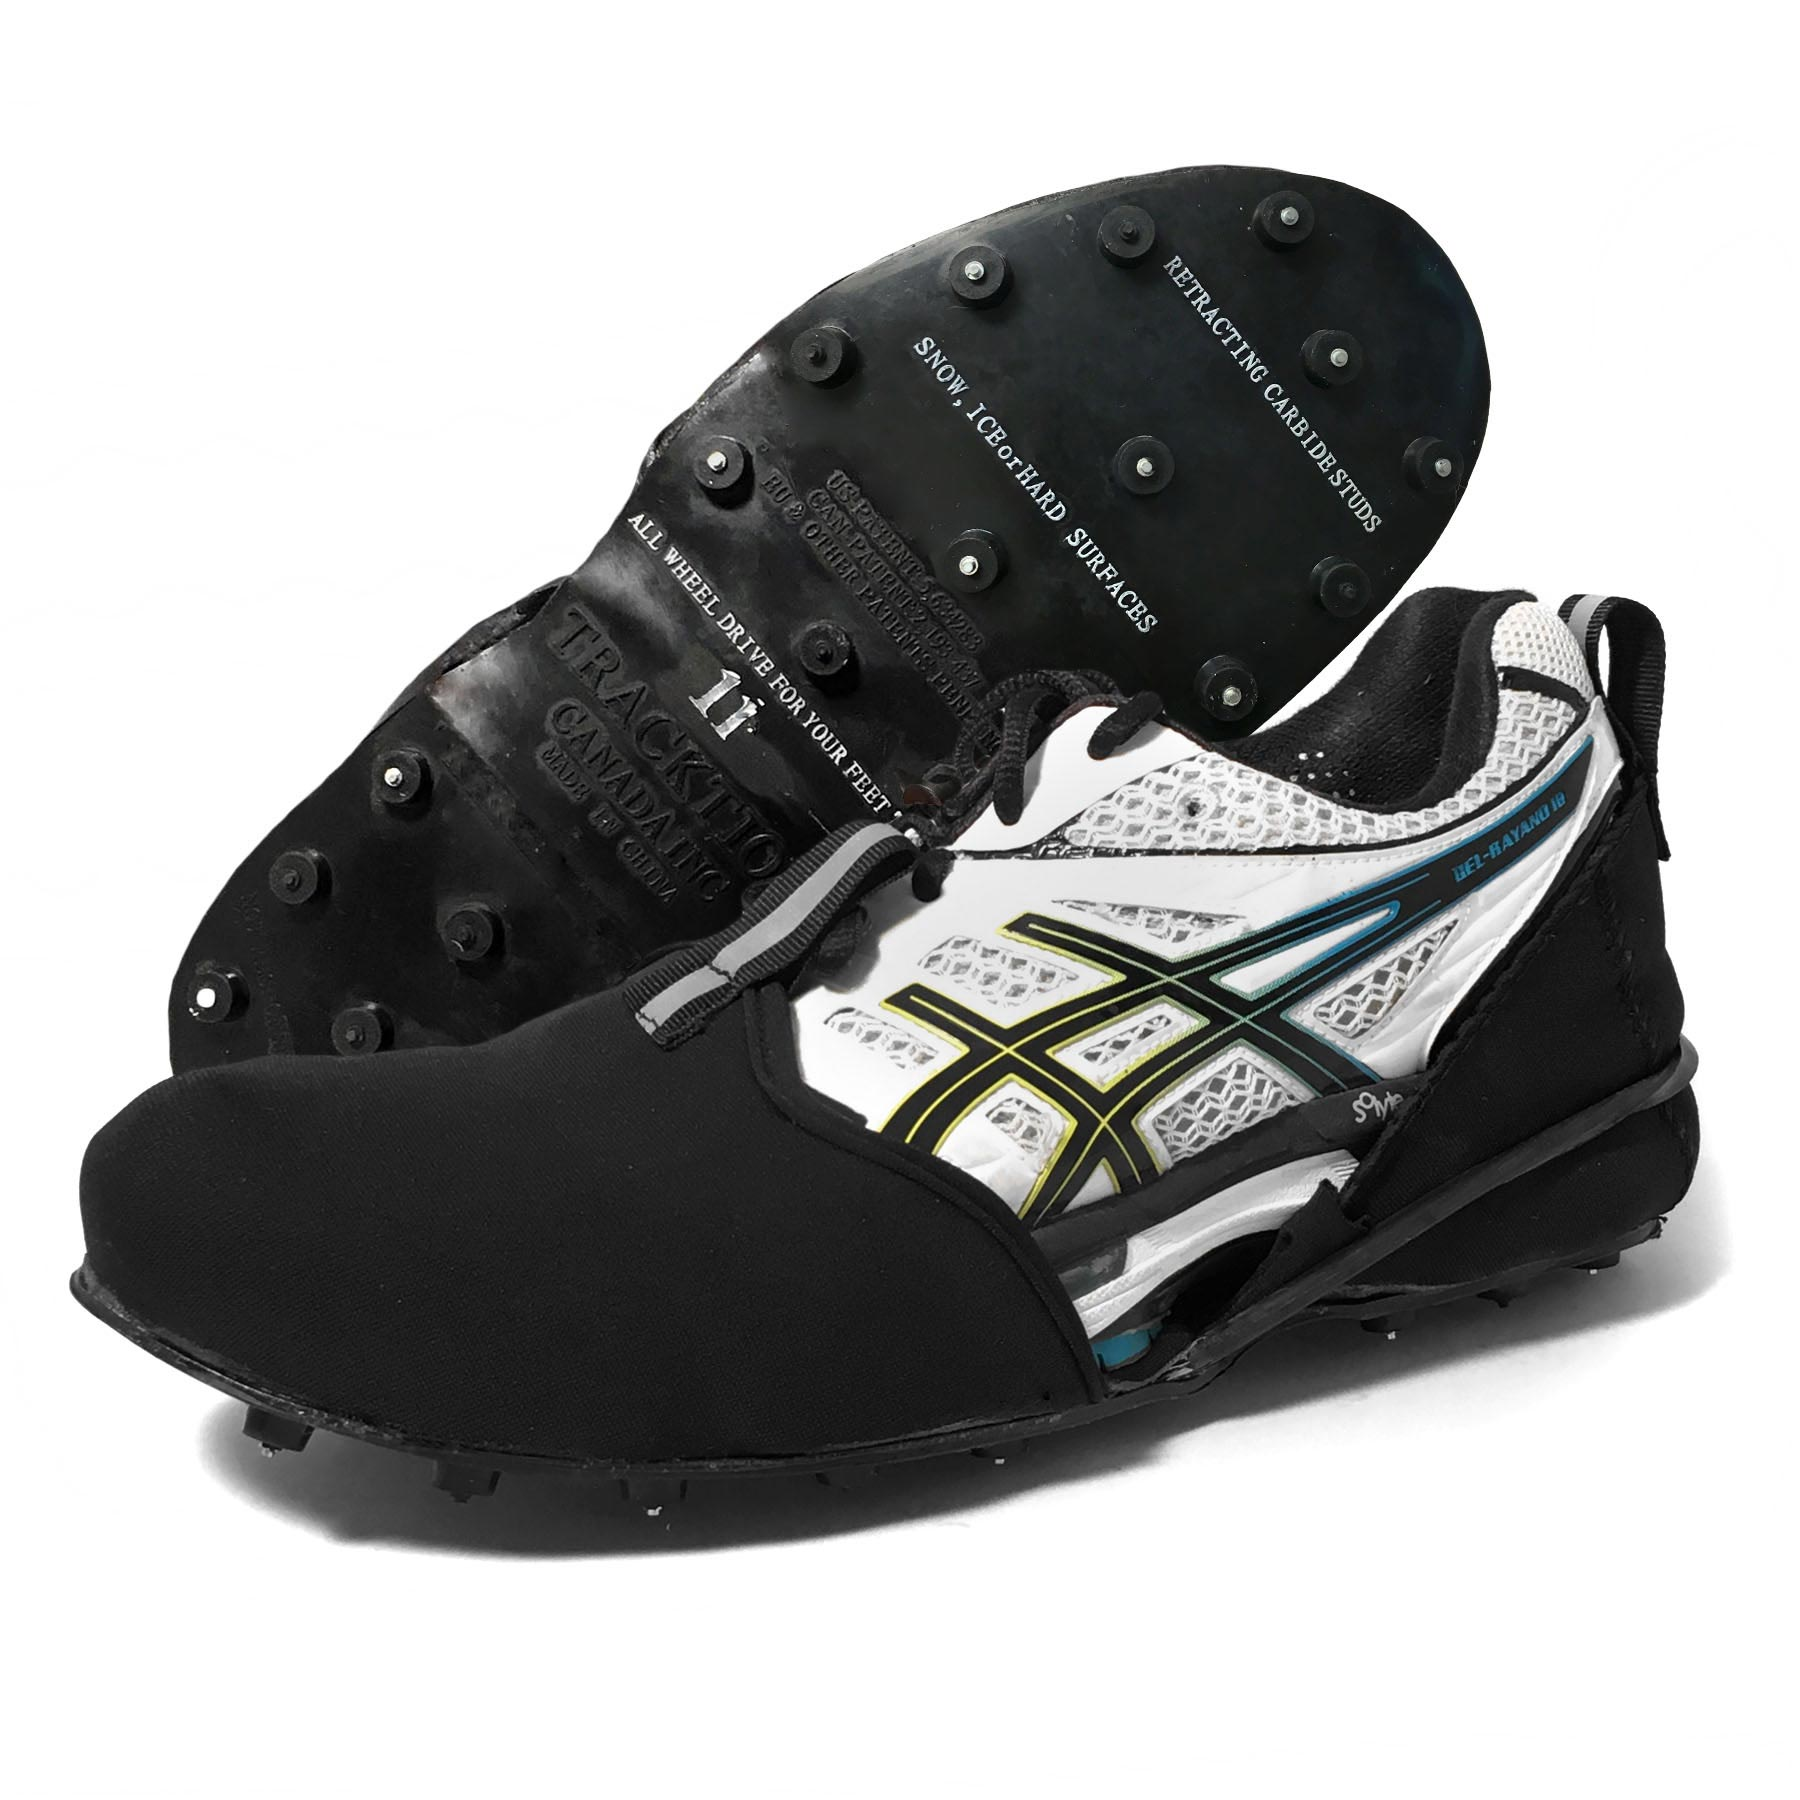 Tracktion Shoe-Soc Hi Performance Ice Cleats - All Wheel Drive For Your Feet - image 2 de 2